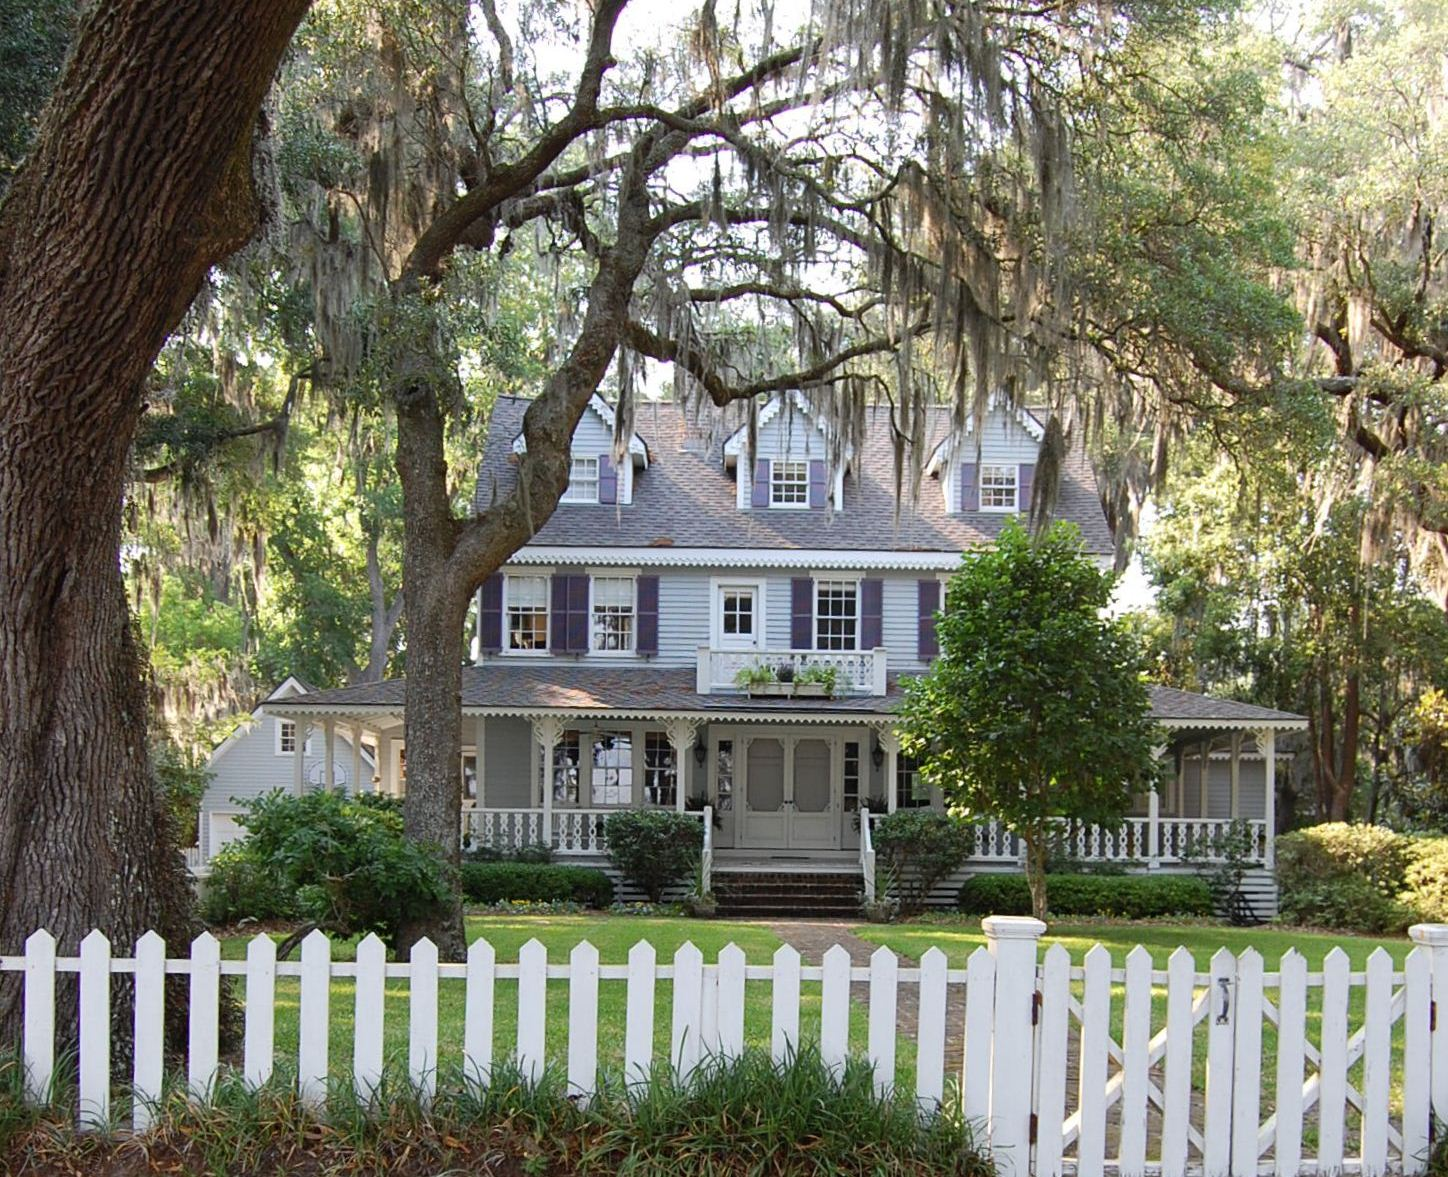 This is what I want in life - my dream southern home